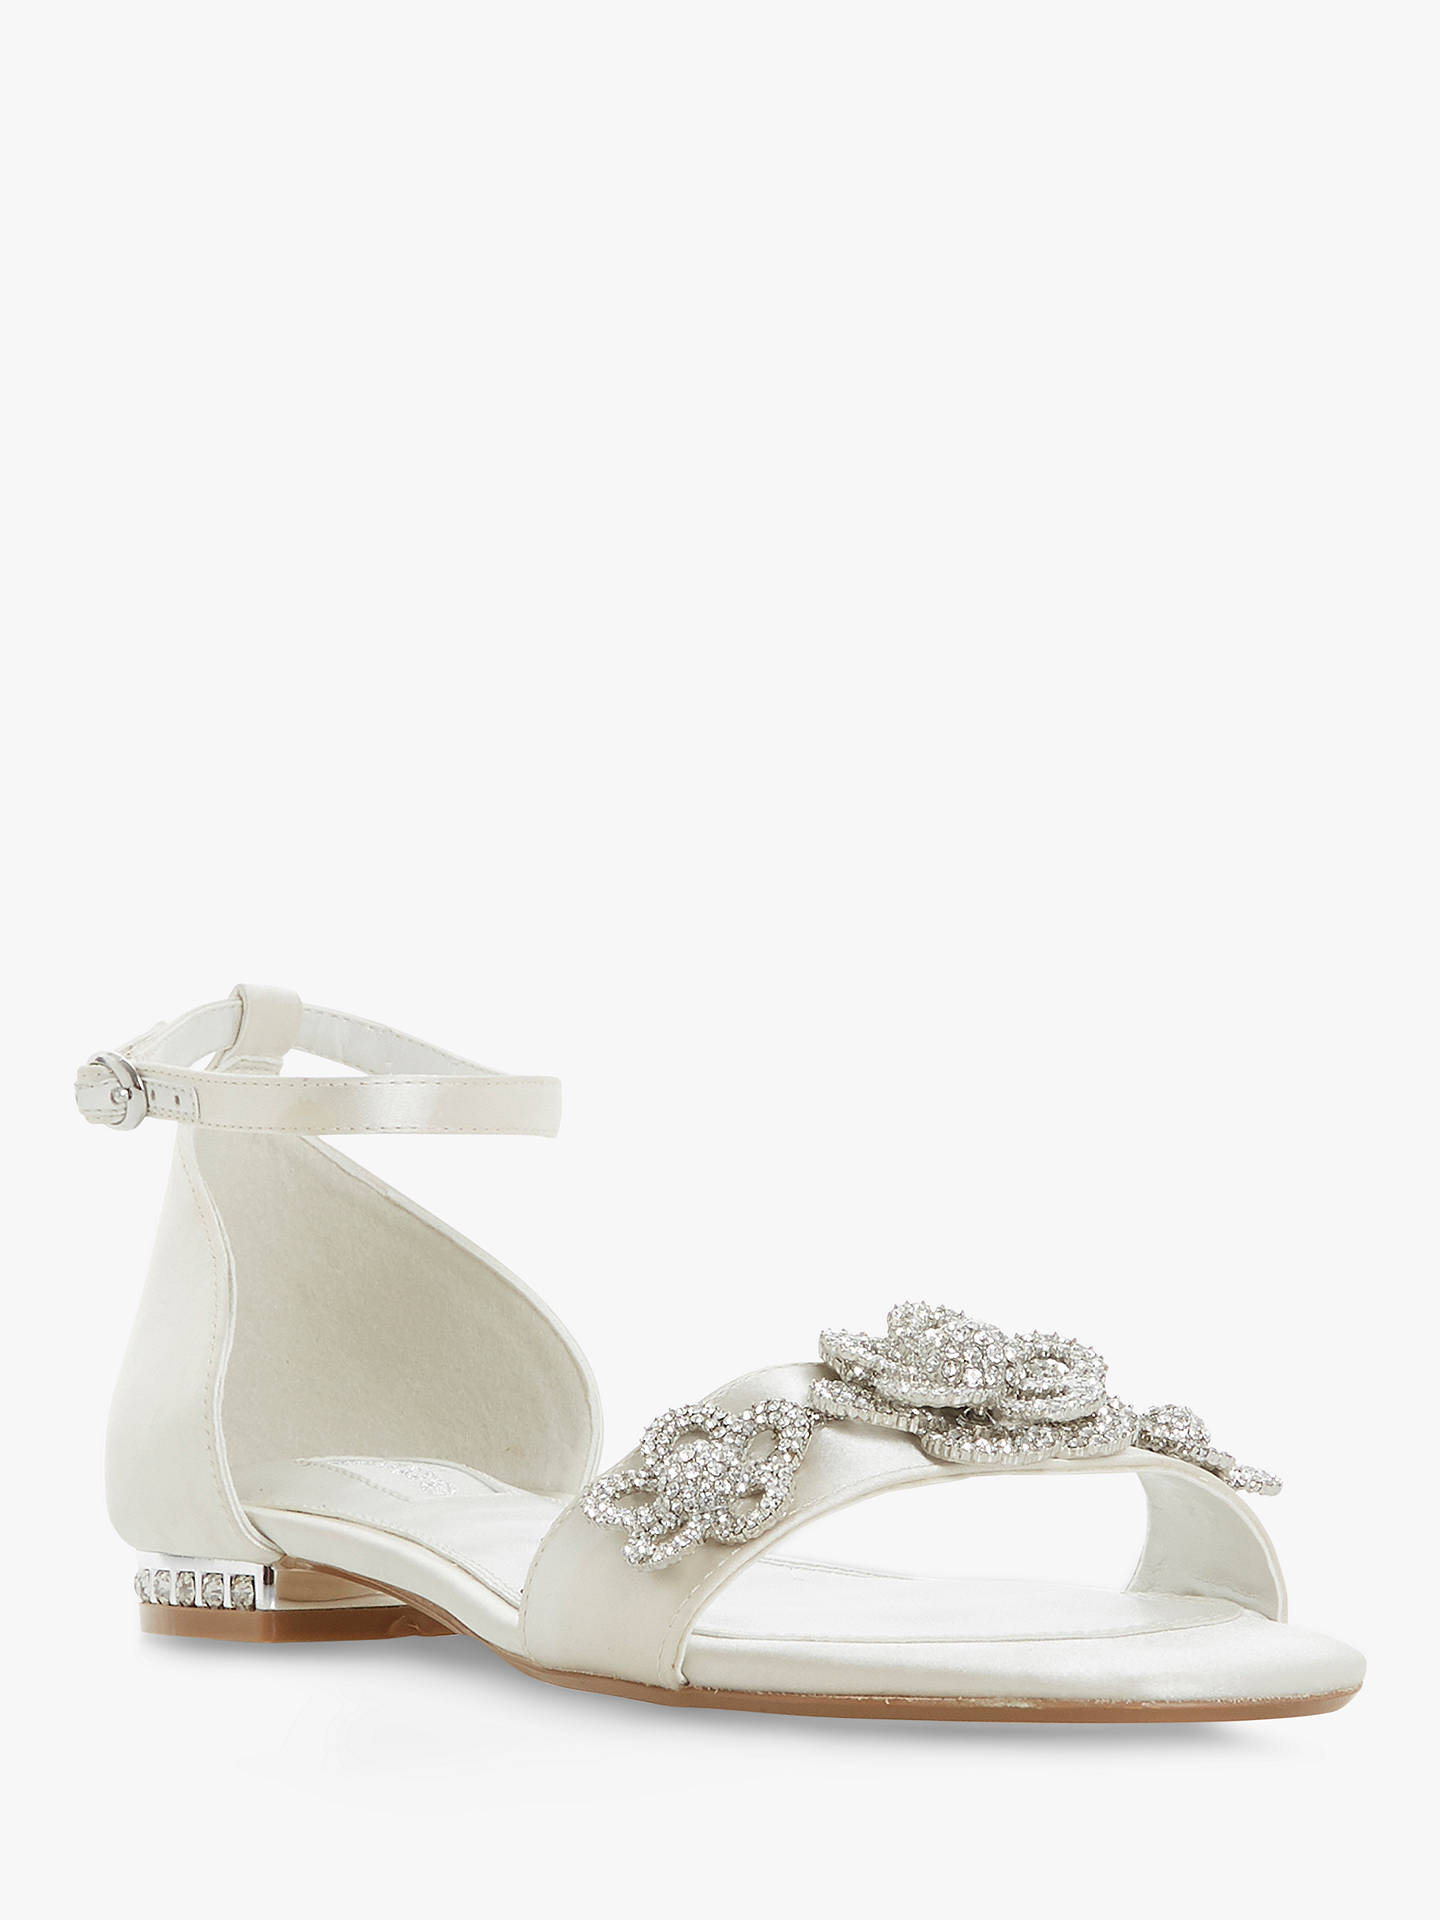 BuyDune Bridal Collection Noted Embellished Sandals, Ivory, 3 Online at johnlewis.com